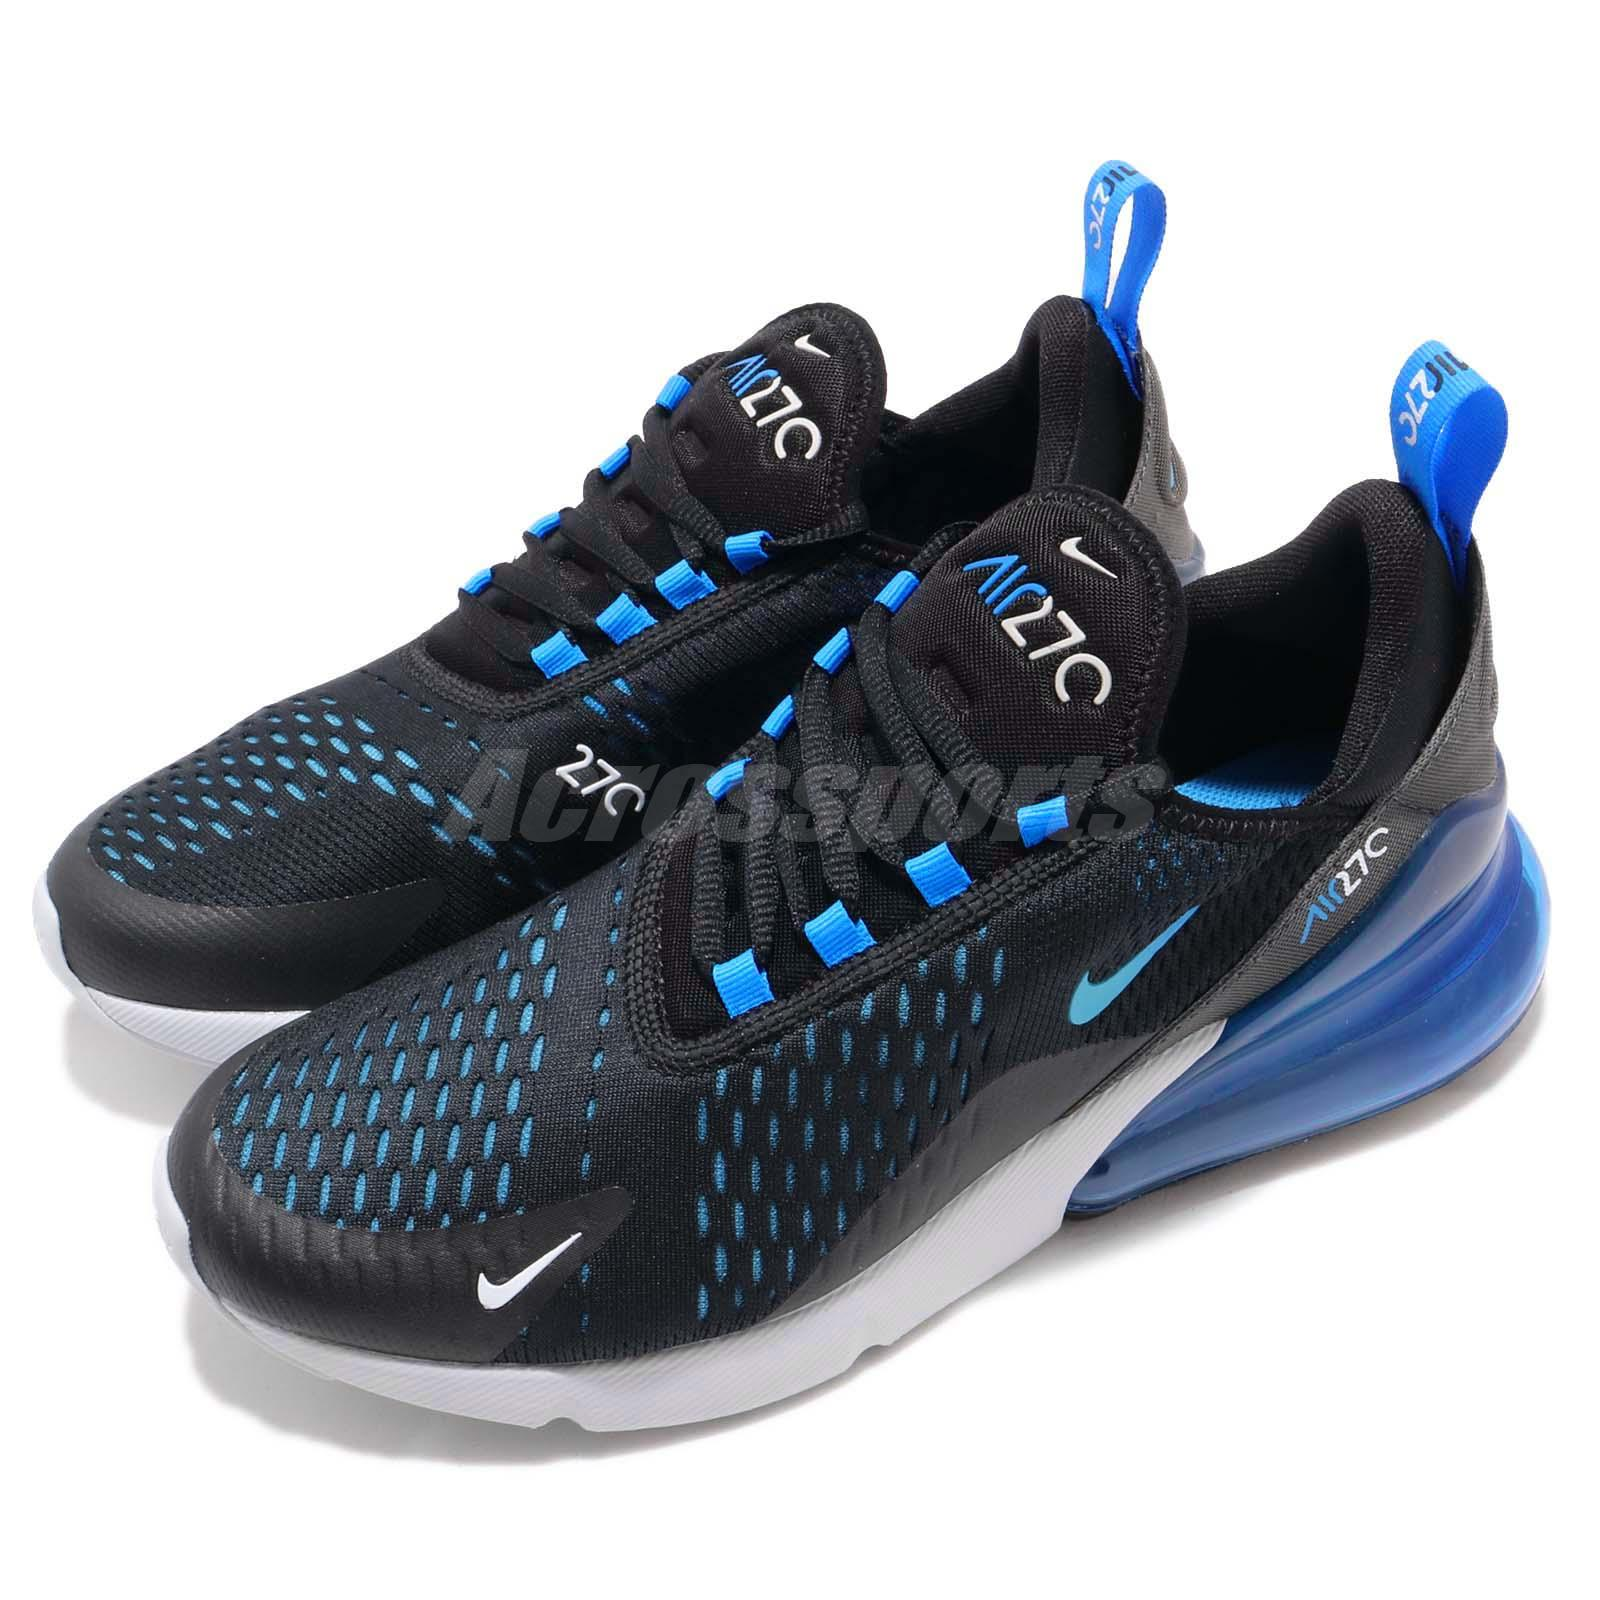 wholesale dealer 8f694 ae3e2 Details about Nike Air Max 270 Liquid Metal Black Blue Fury Men Running  Shoes AH8050-019